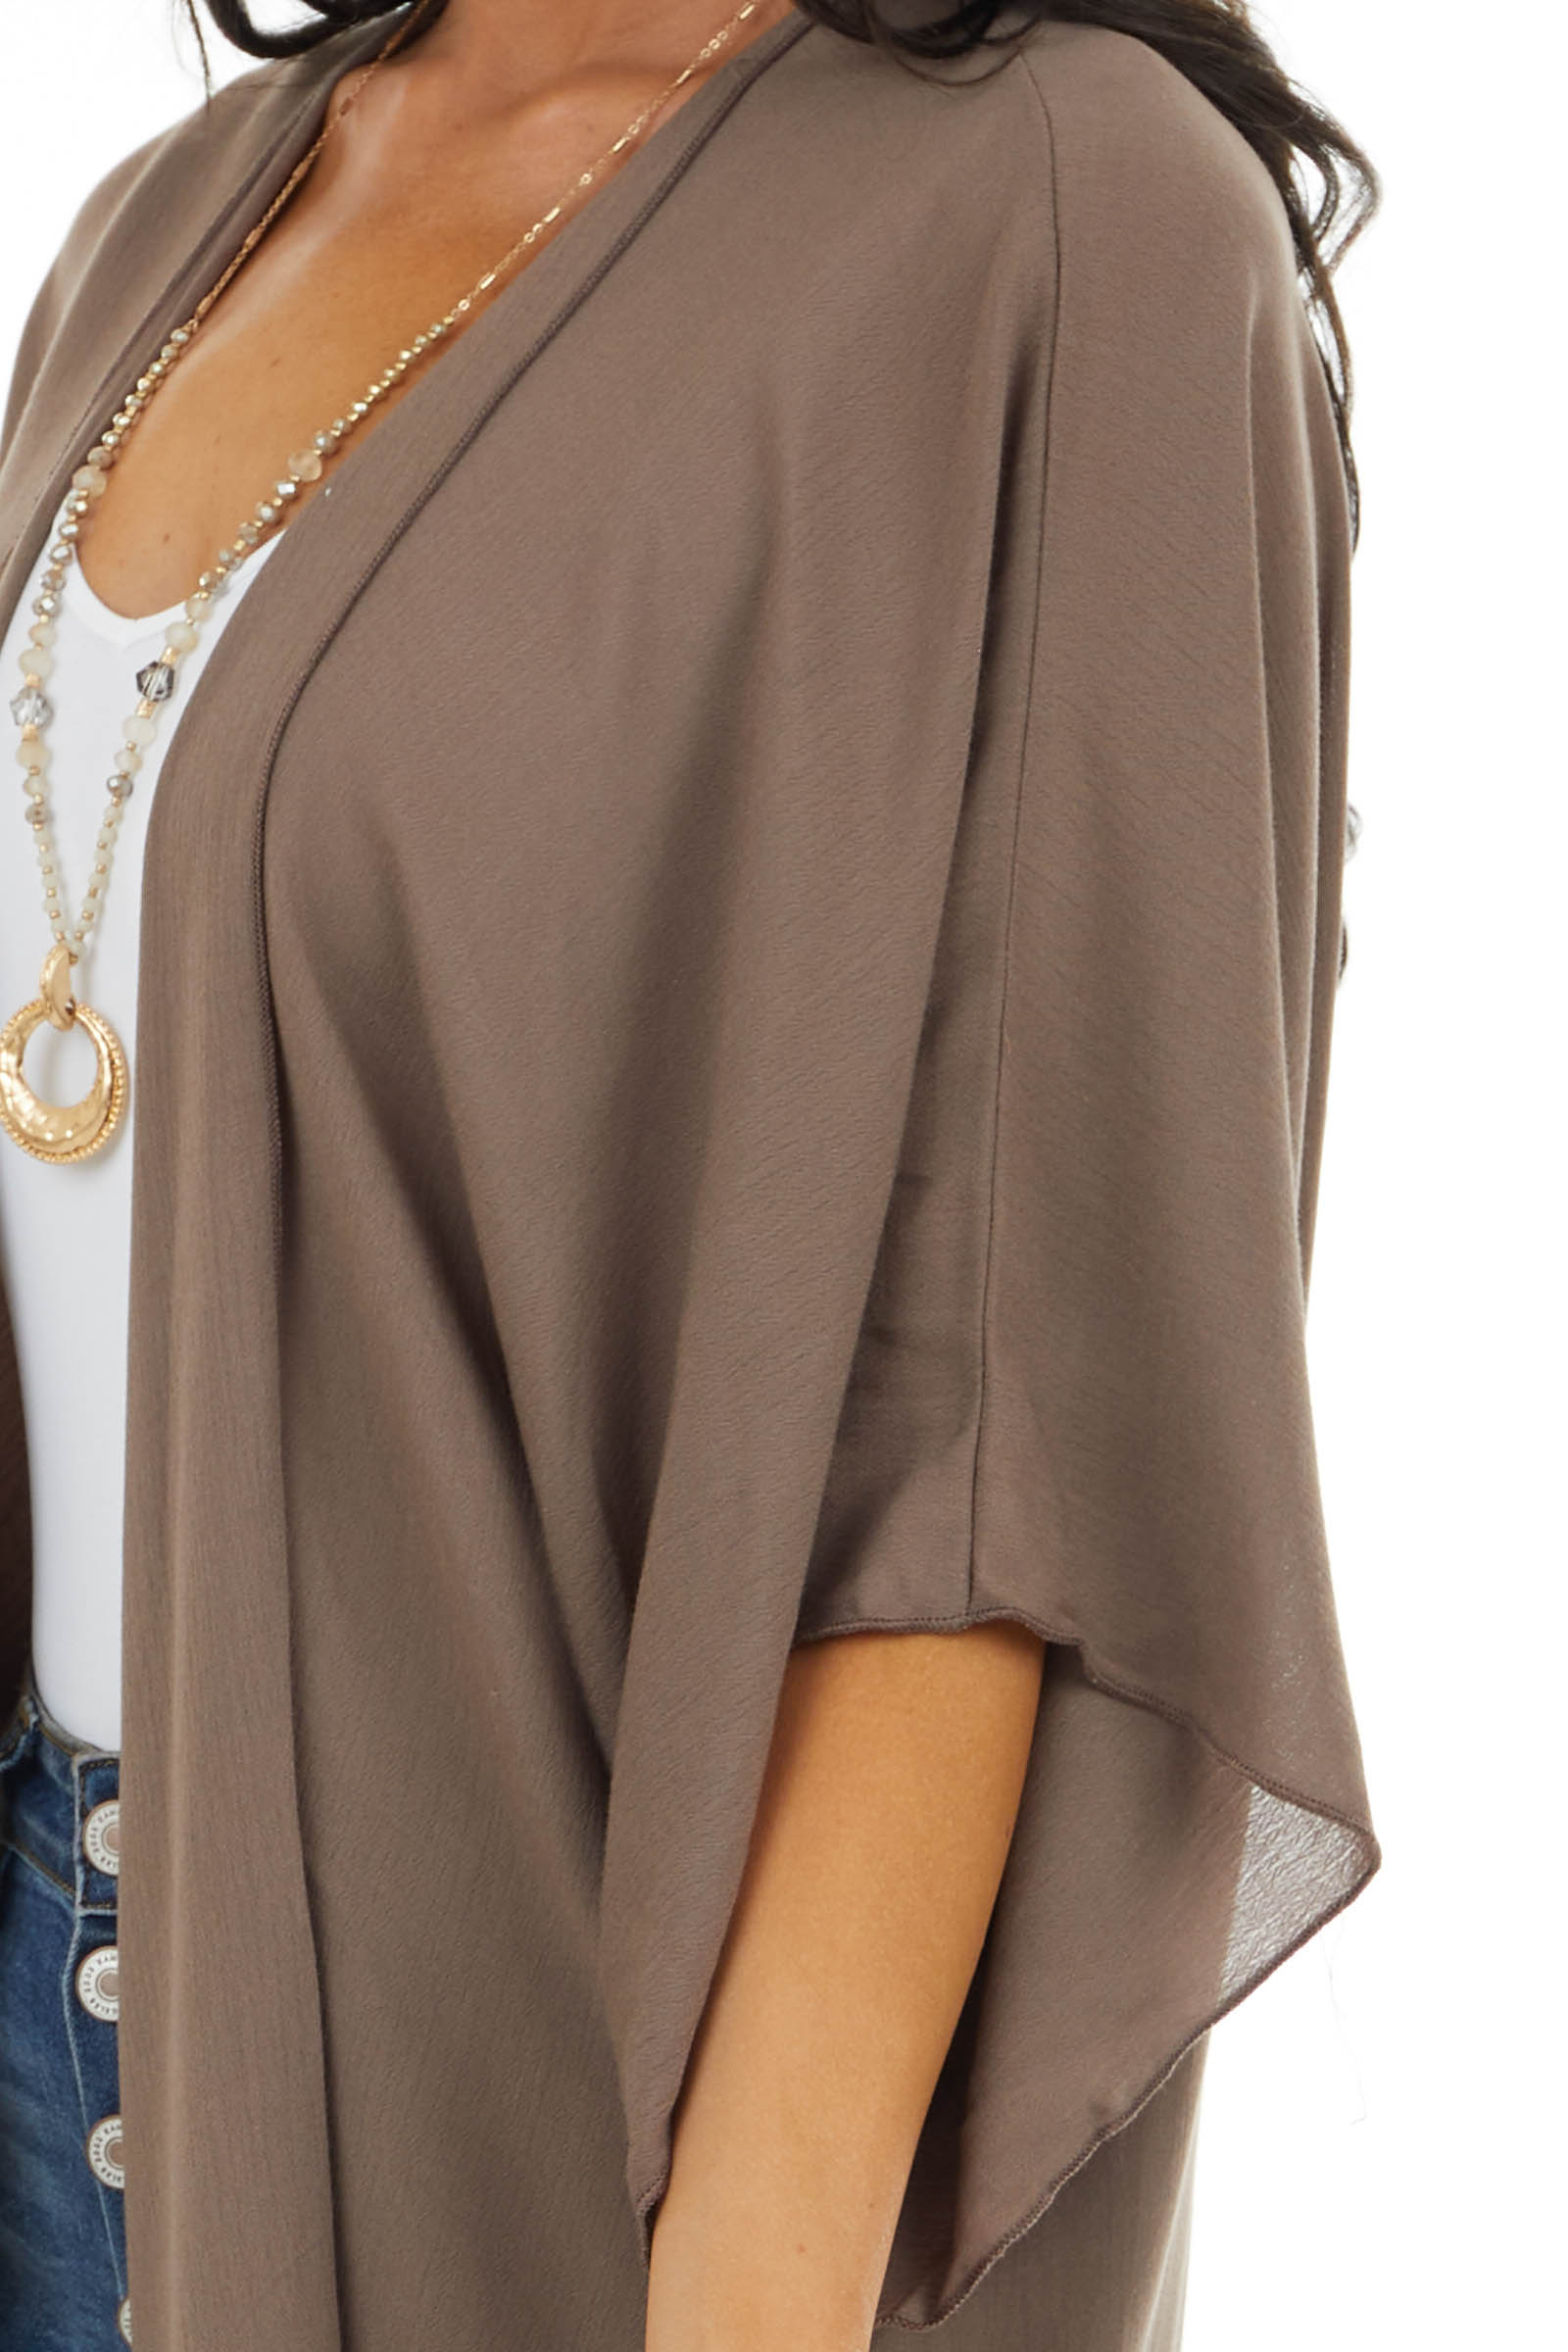 Mocha Open Front Cardigan with 3/4 Length Dolman Sleeves